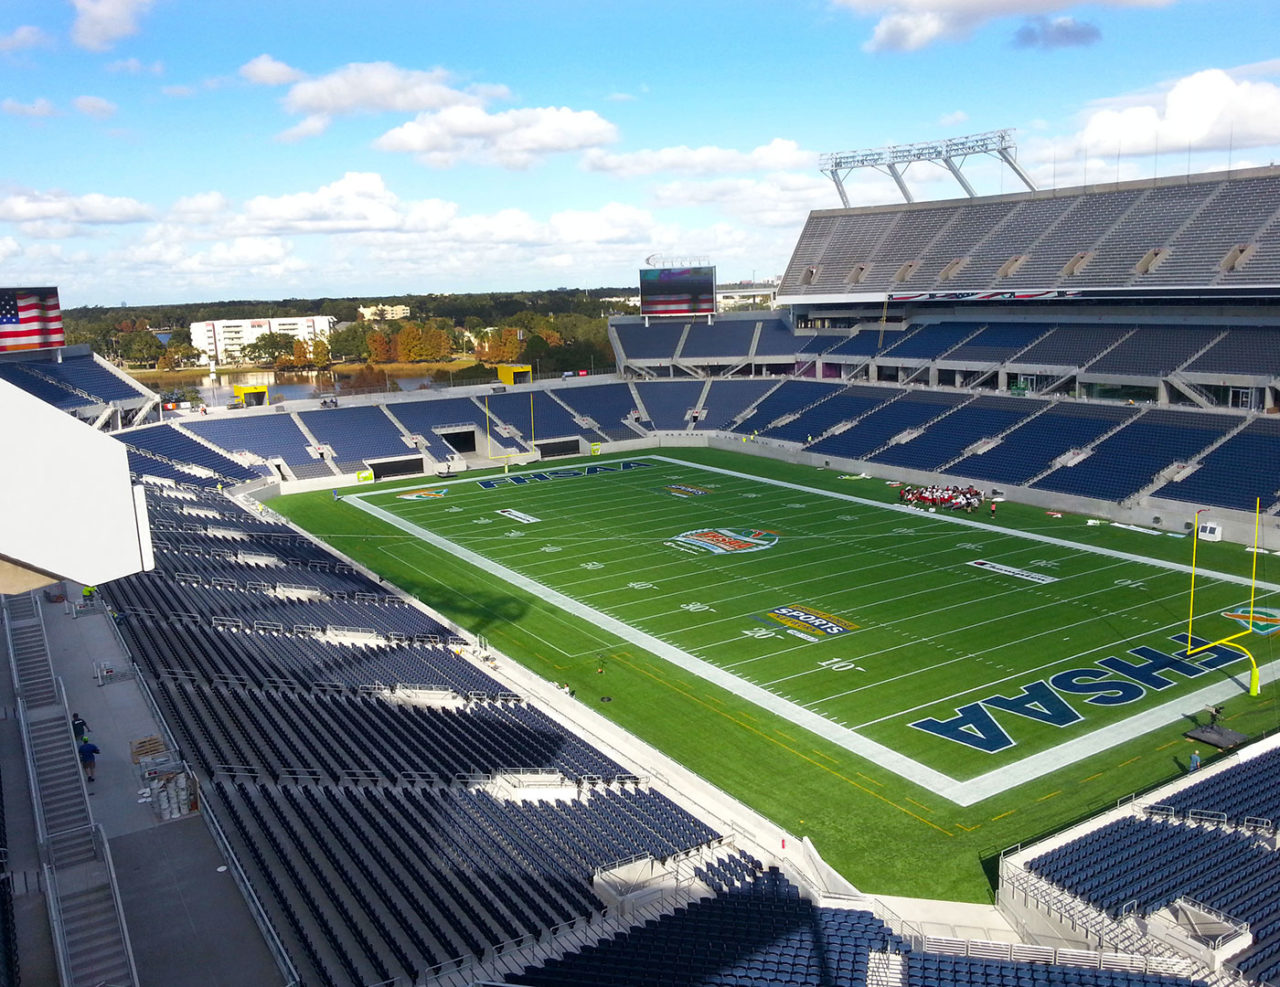 provided over 36,000 linear feet of ornamental railing at Citrus Bowl